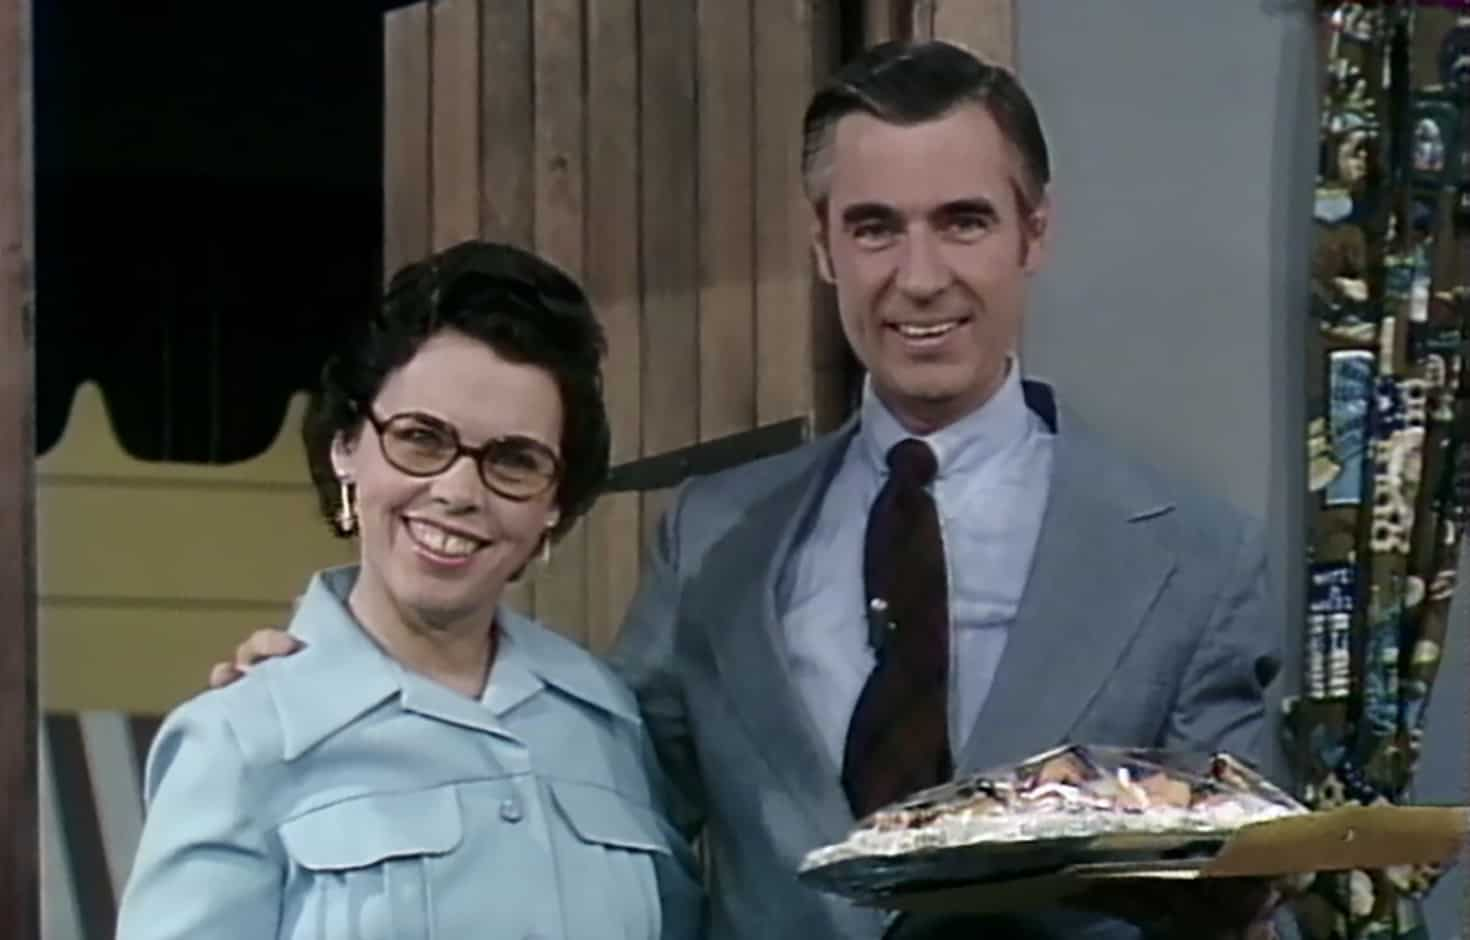 Mister Rogers and Mrs Rogers